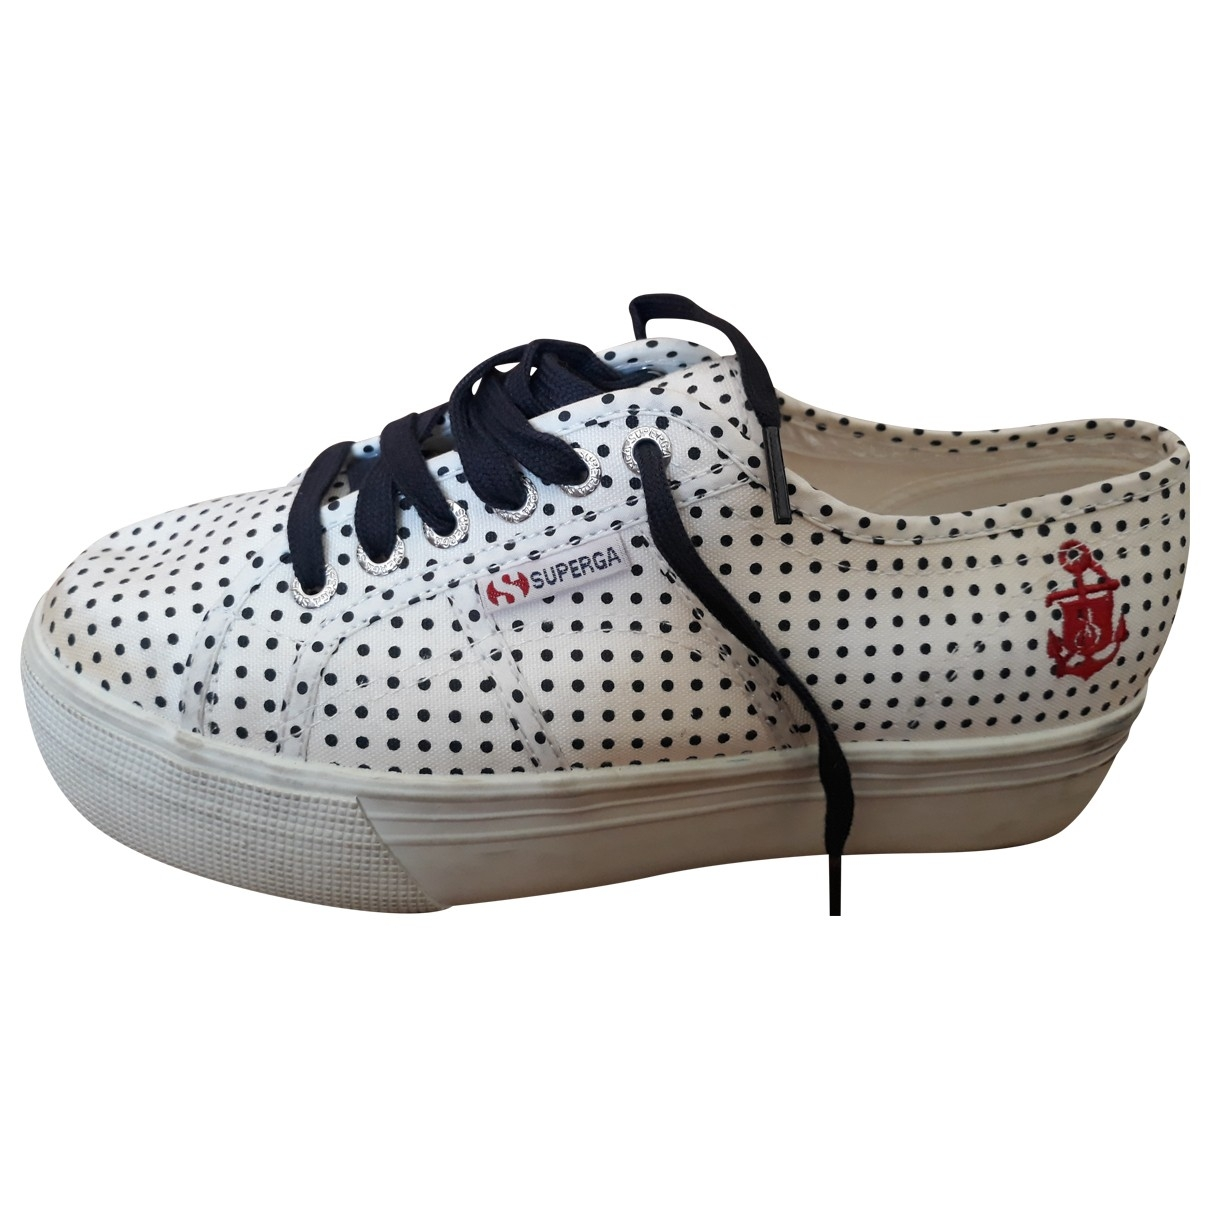 Superga \N Sneakers in  Weiss Leinen